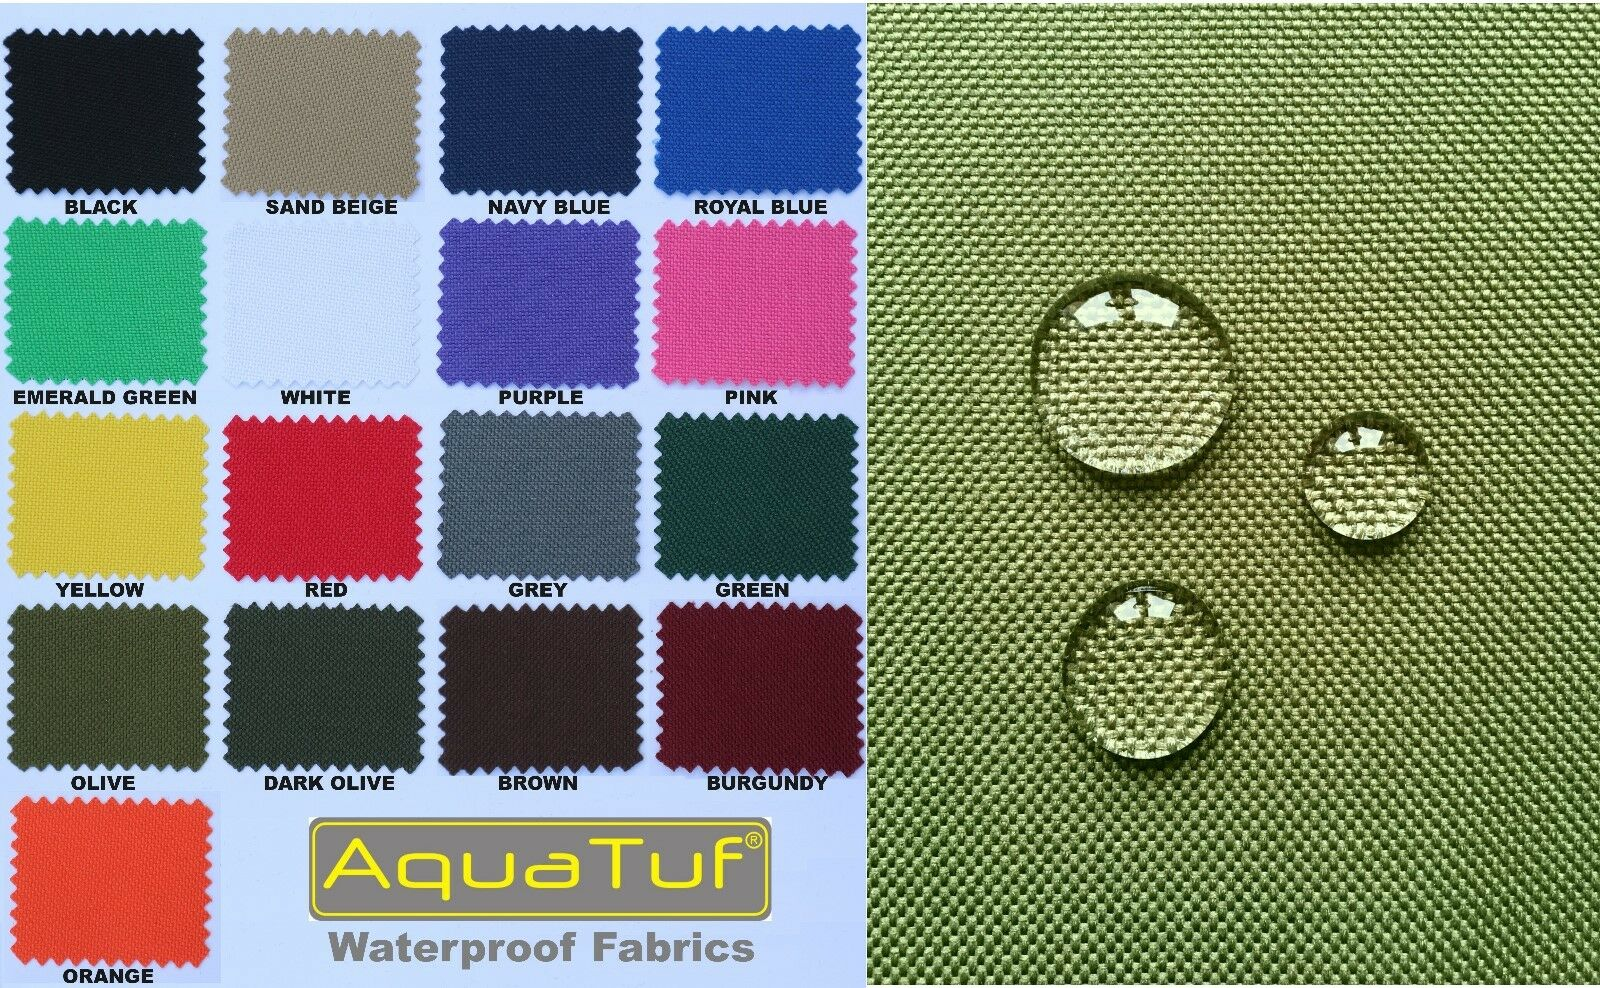 HEAVY DUTY TOUGH WATERPROOF AQUATUF SD OUTDOOR CANVAS FABRIC MATERIAL COVER SEAT